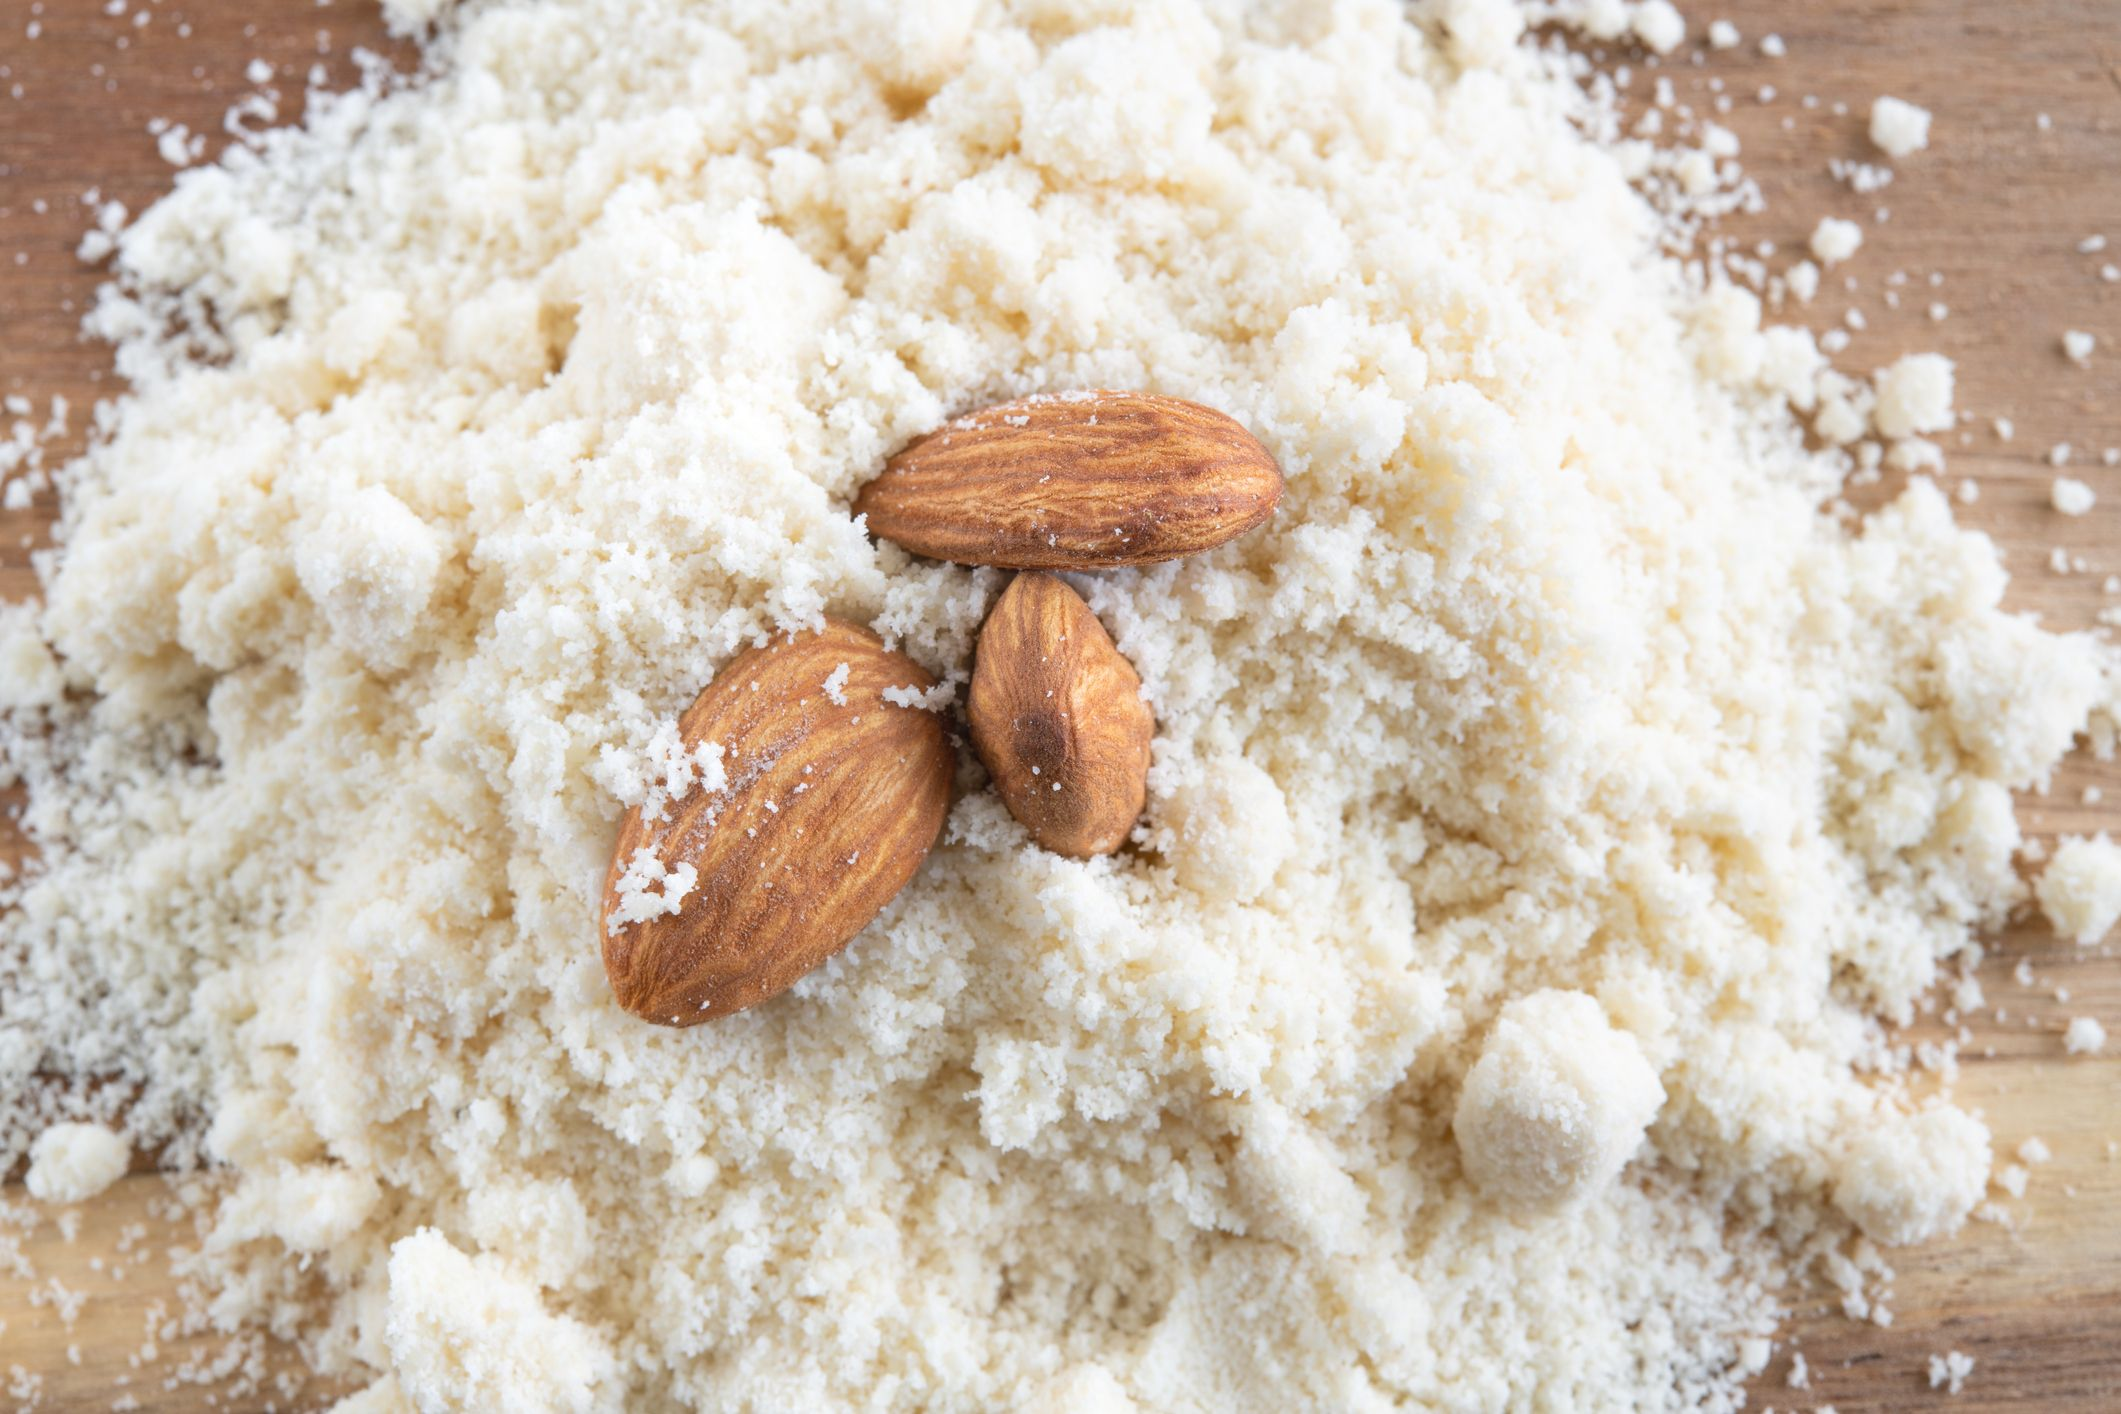 Almond Meal Vs. Almond Flour: What's The Difference And How Should You Use Each?